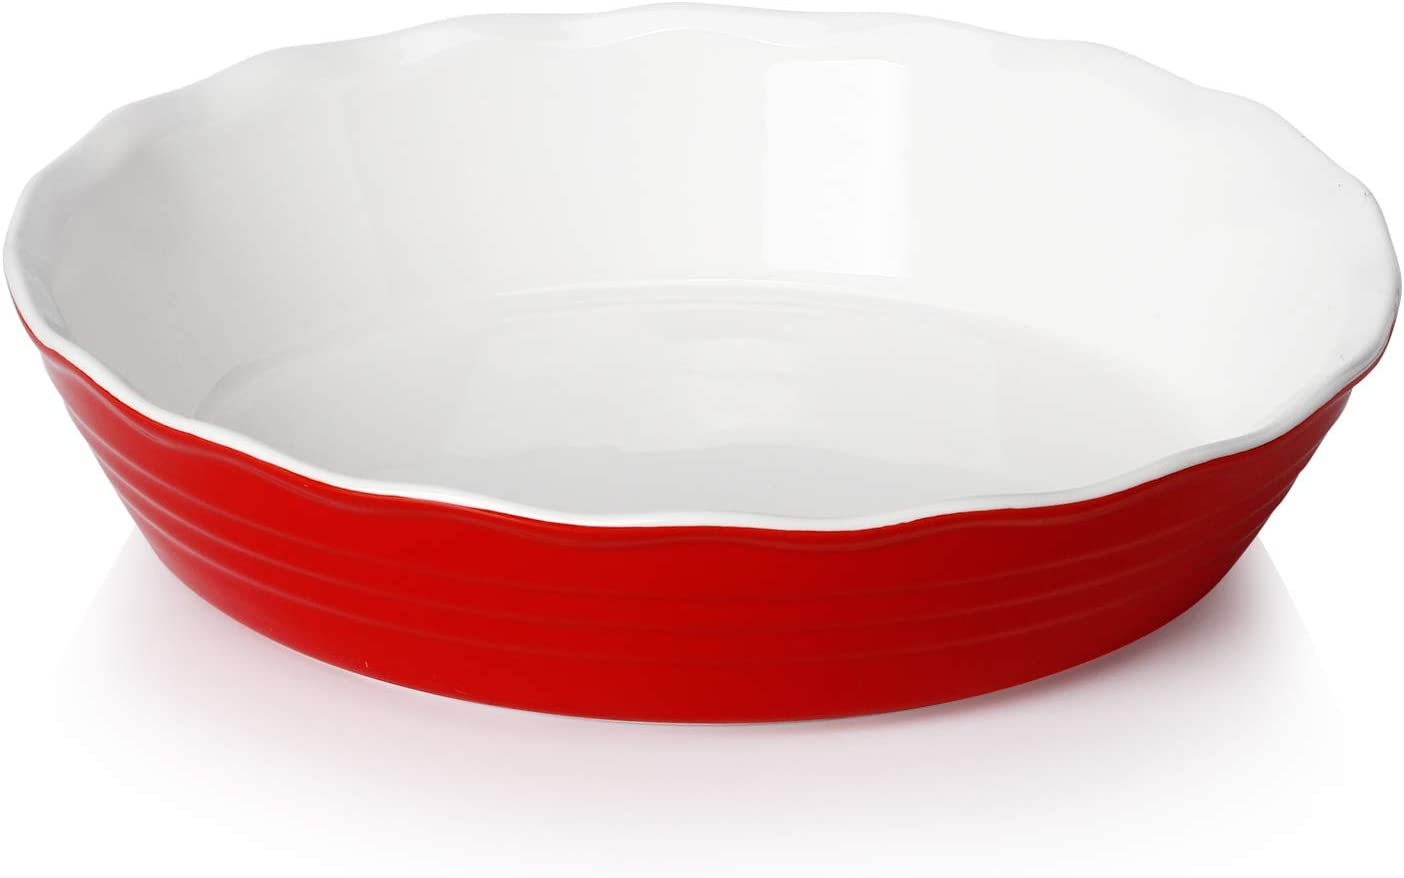 Sweese 516.104 Porcelain Pie Pan, 9 Inches Pie Plate, Round Baking Dish with Ruffled Edge, Red